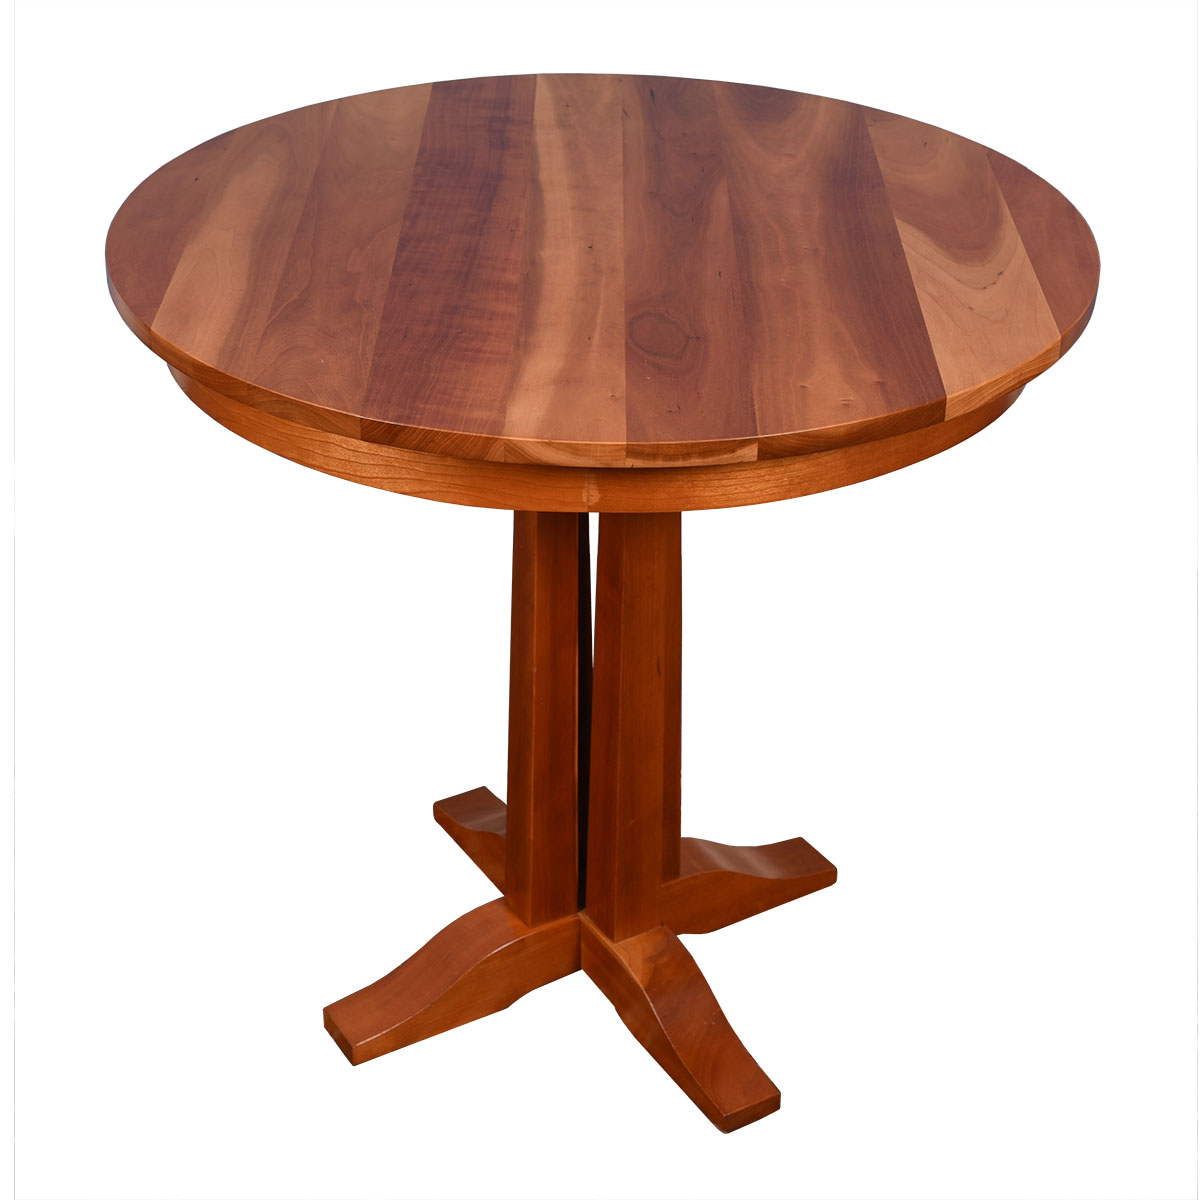 31″ x 29.5″ Dinette Table with Pedestal Base